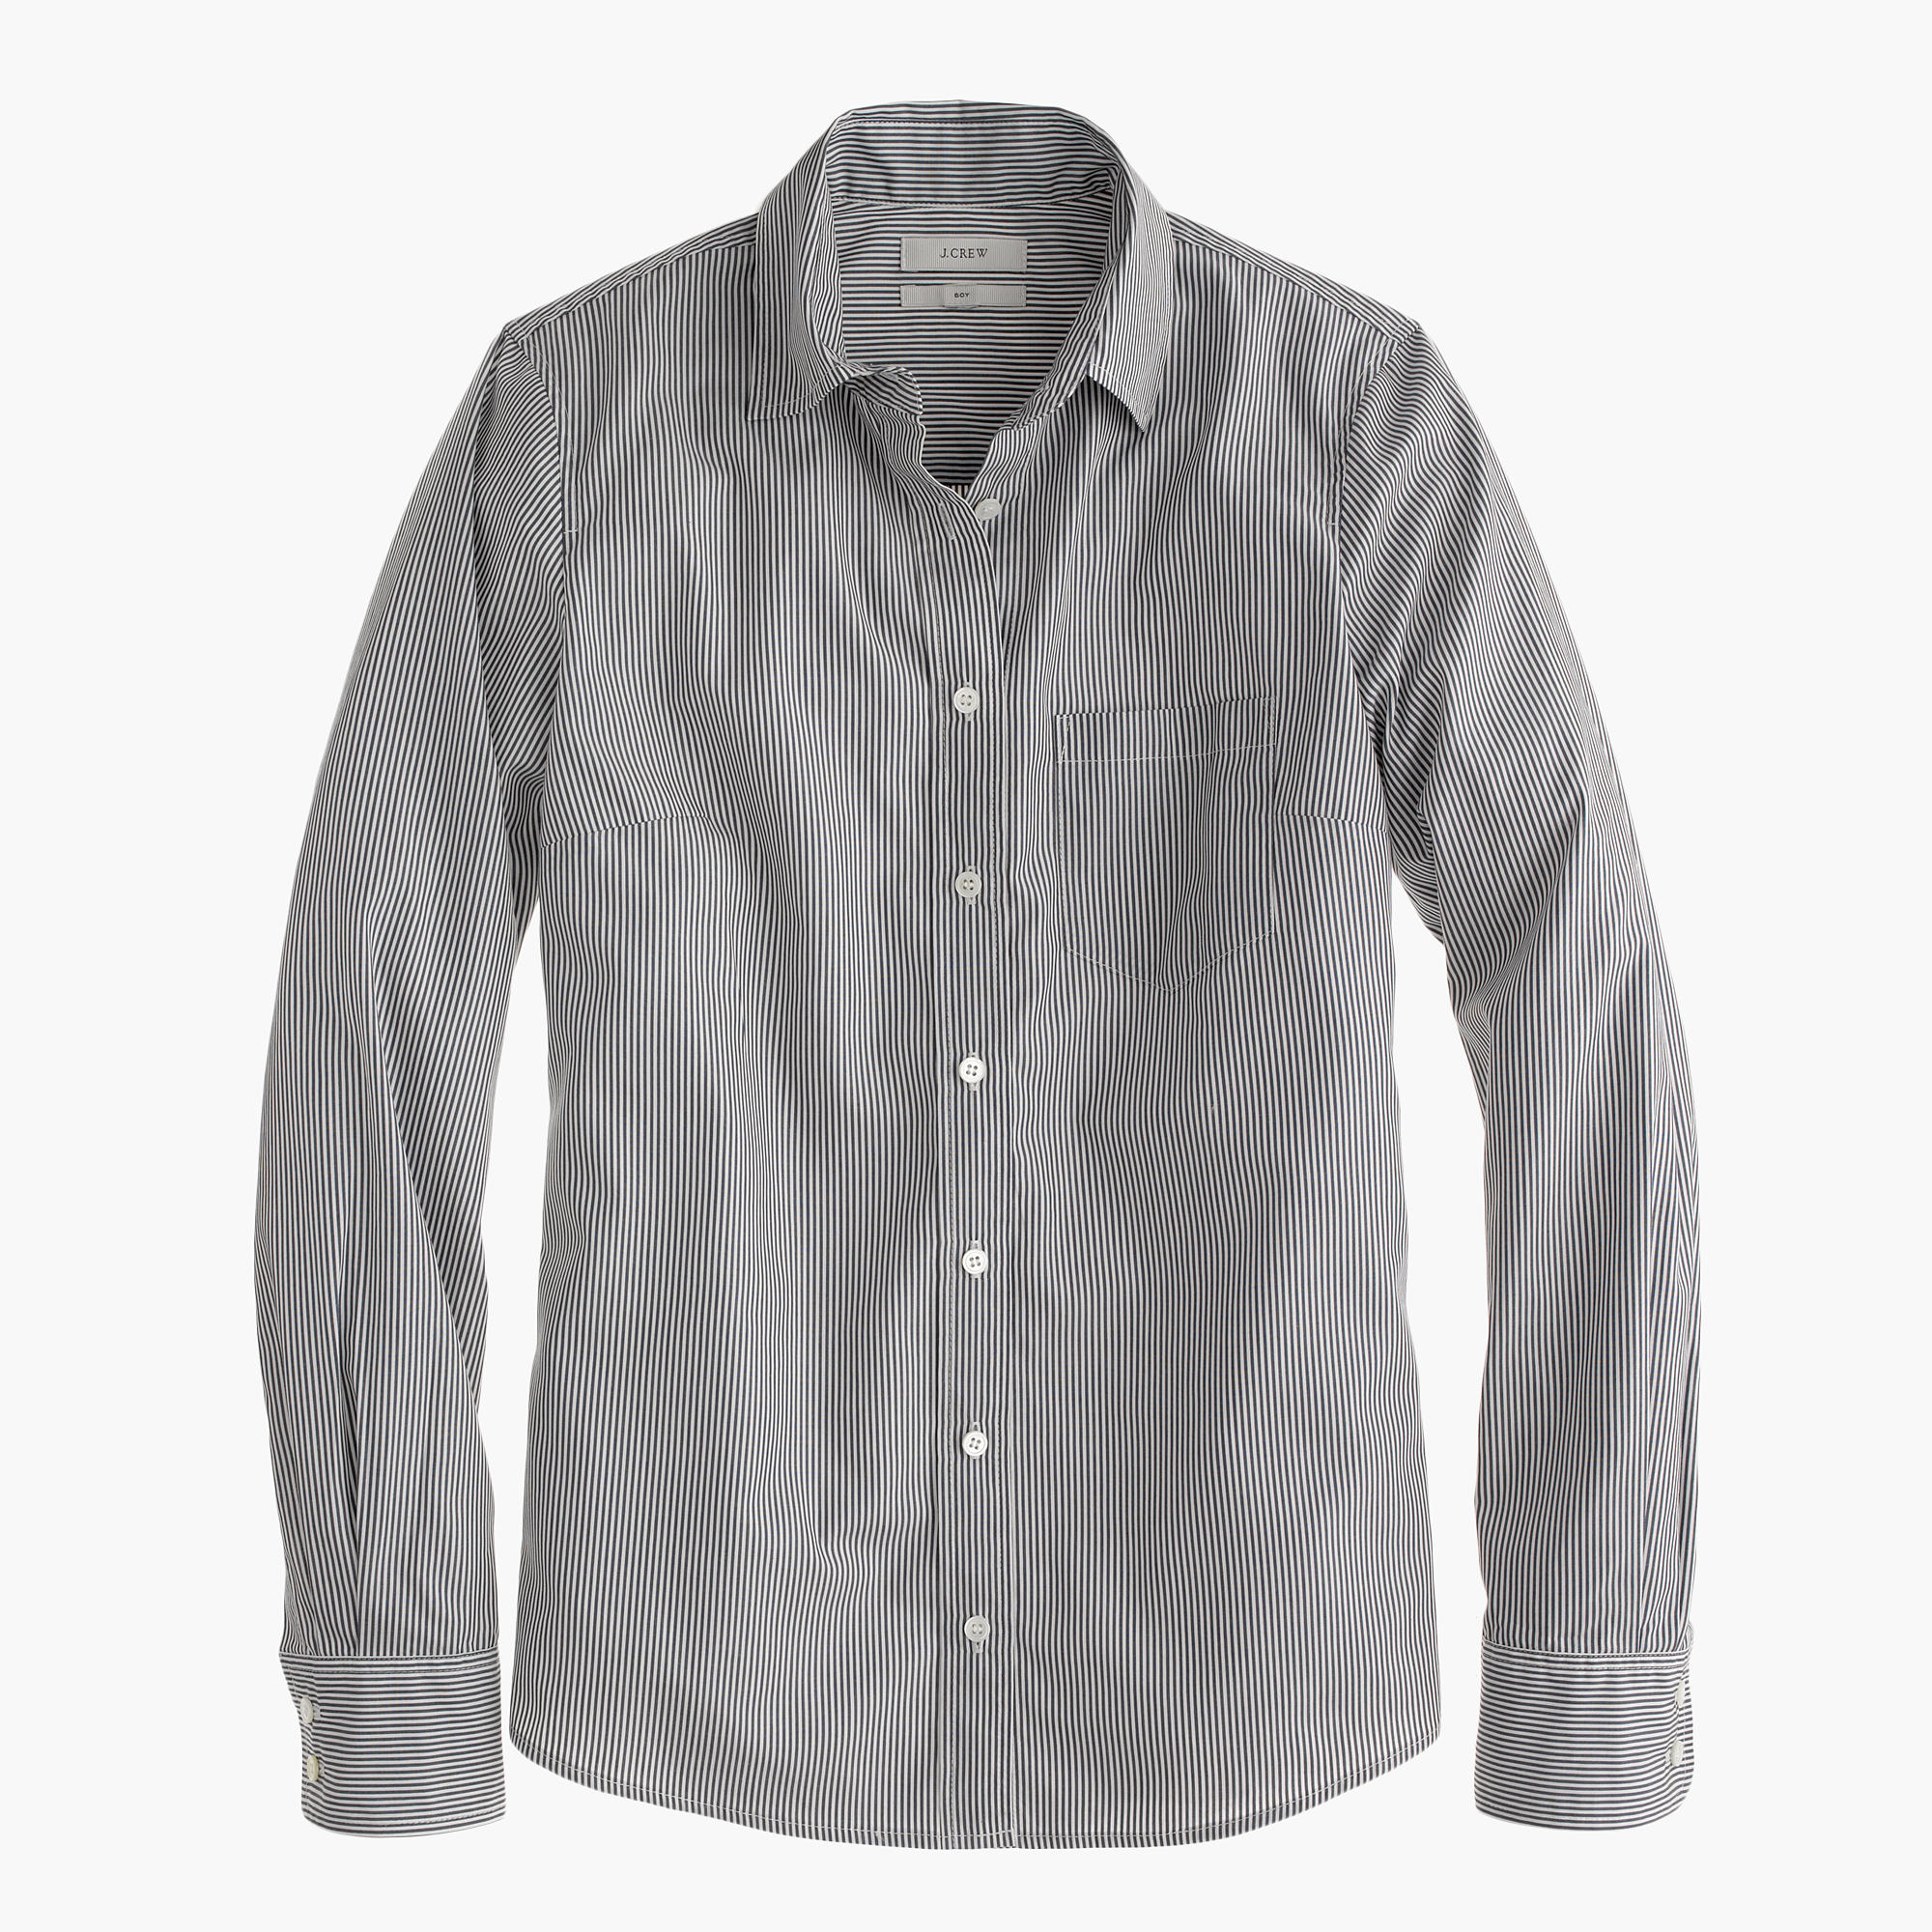 J Crew Shirt—striped shirts